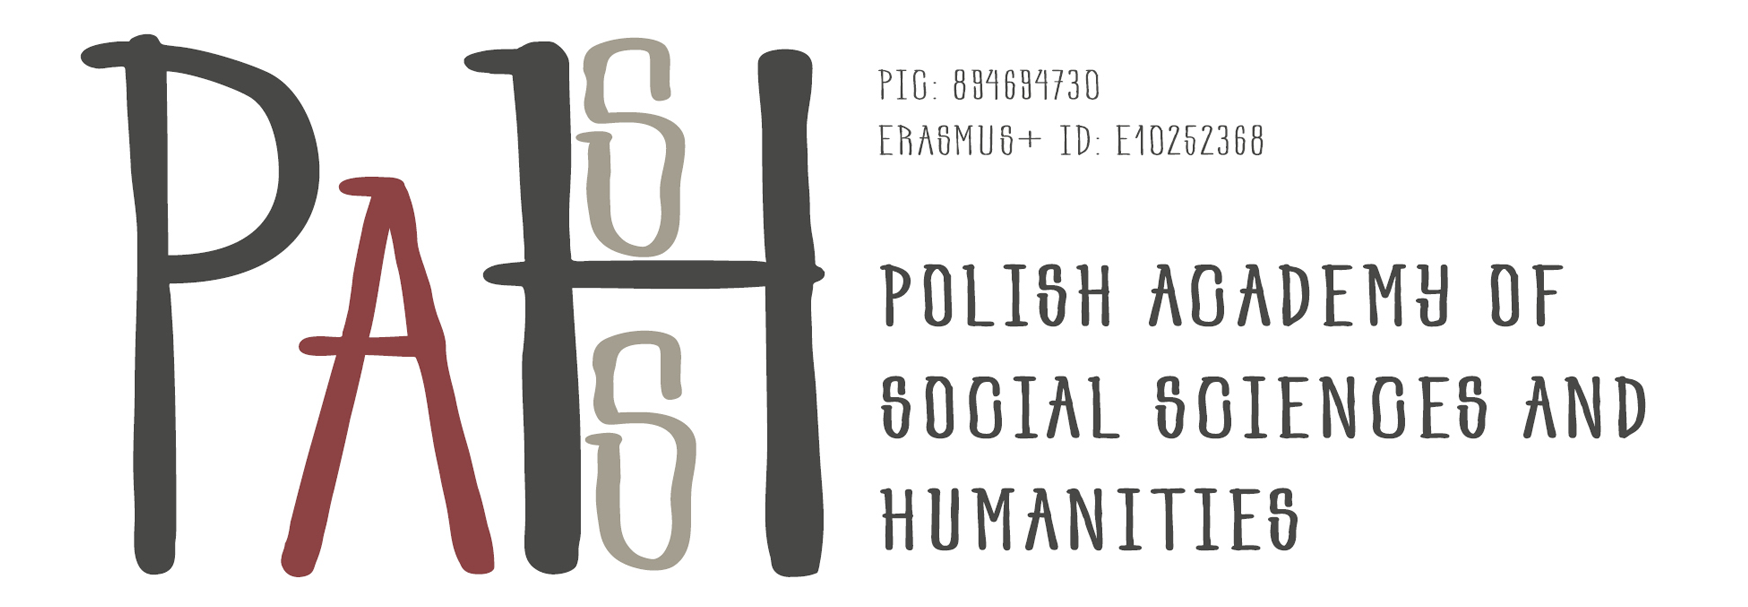 Polish Academy of Social Sciences and Humanities